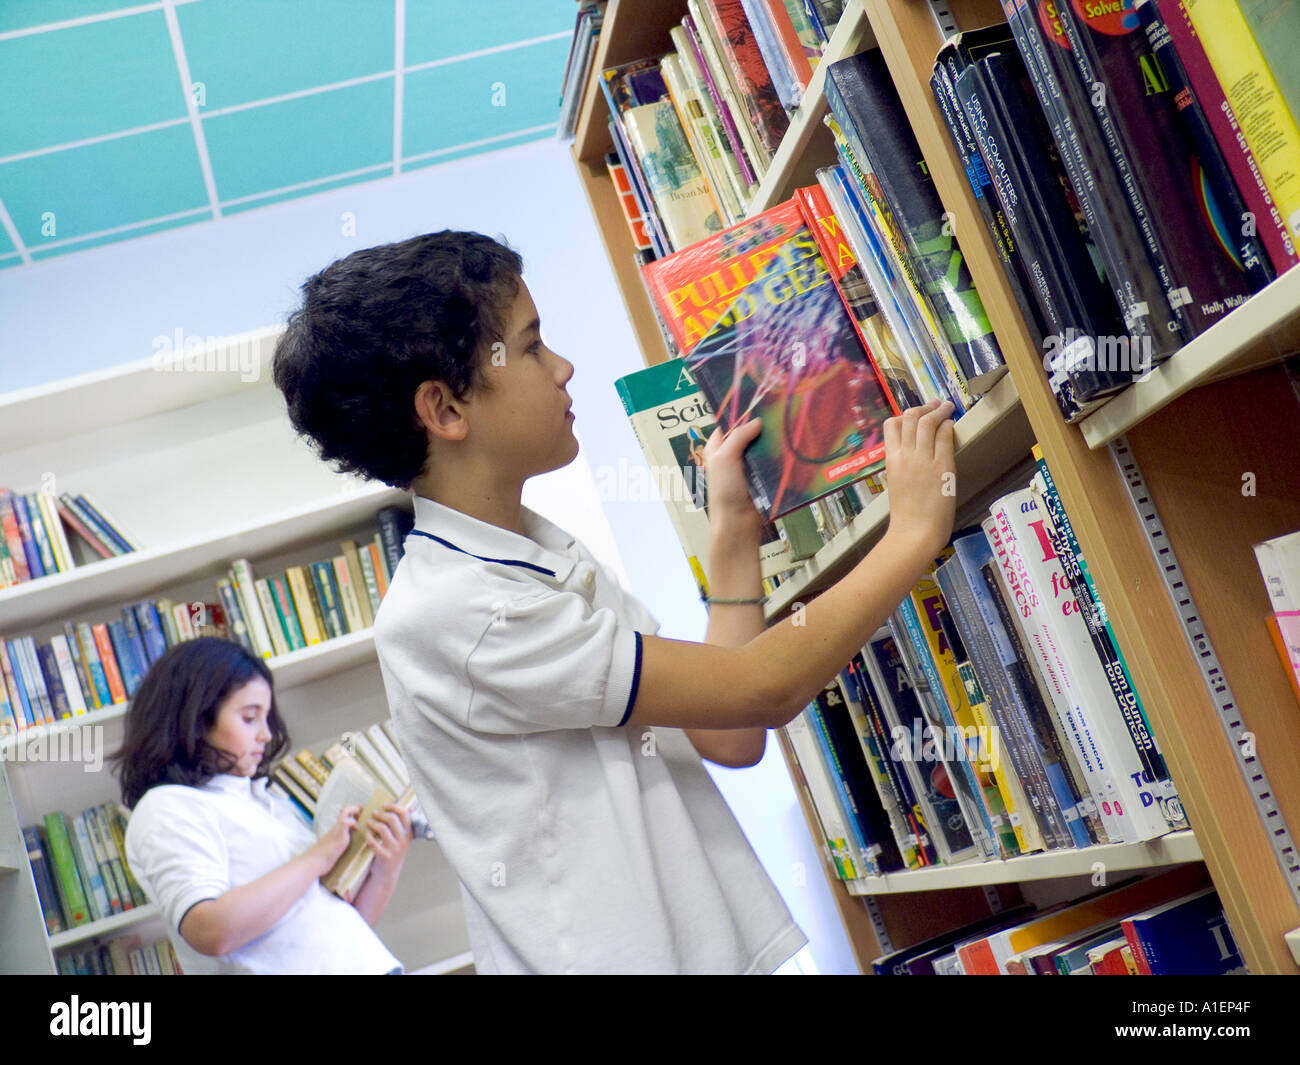 Junior schoolboy searches for reference book in school library - Stock Image